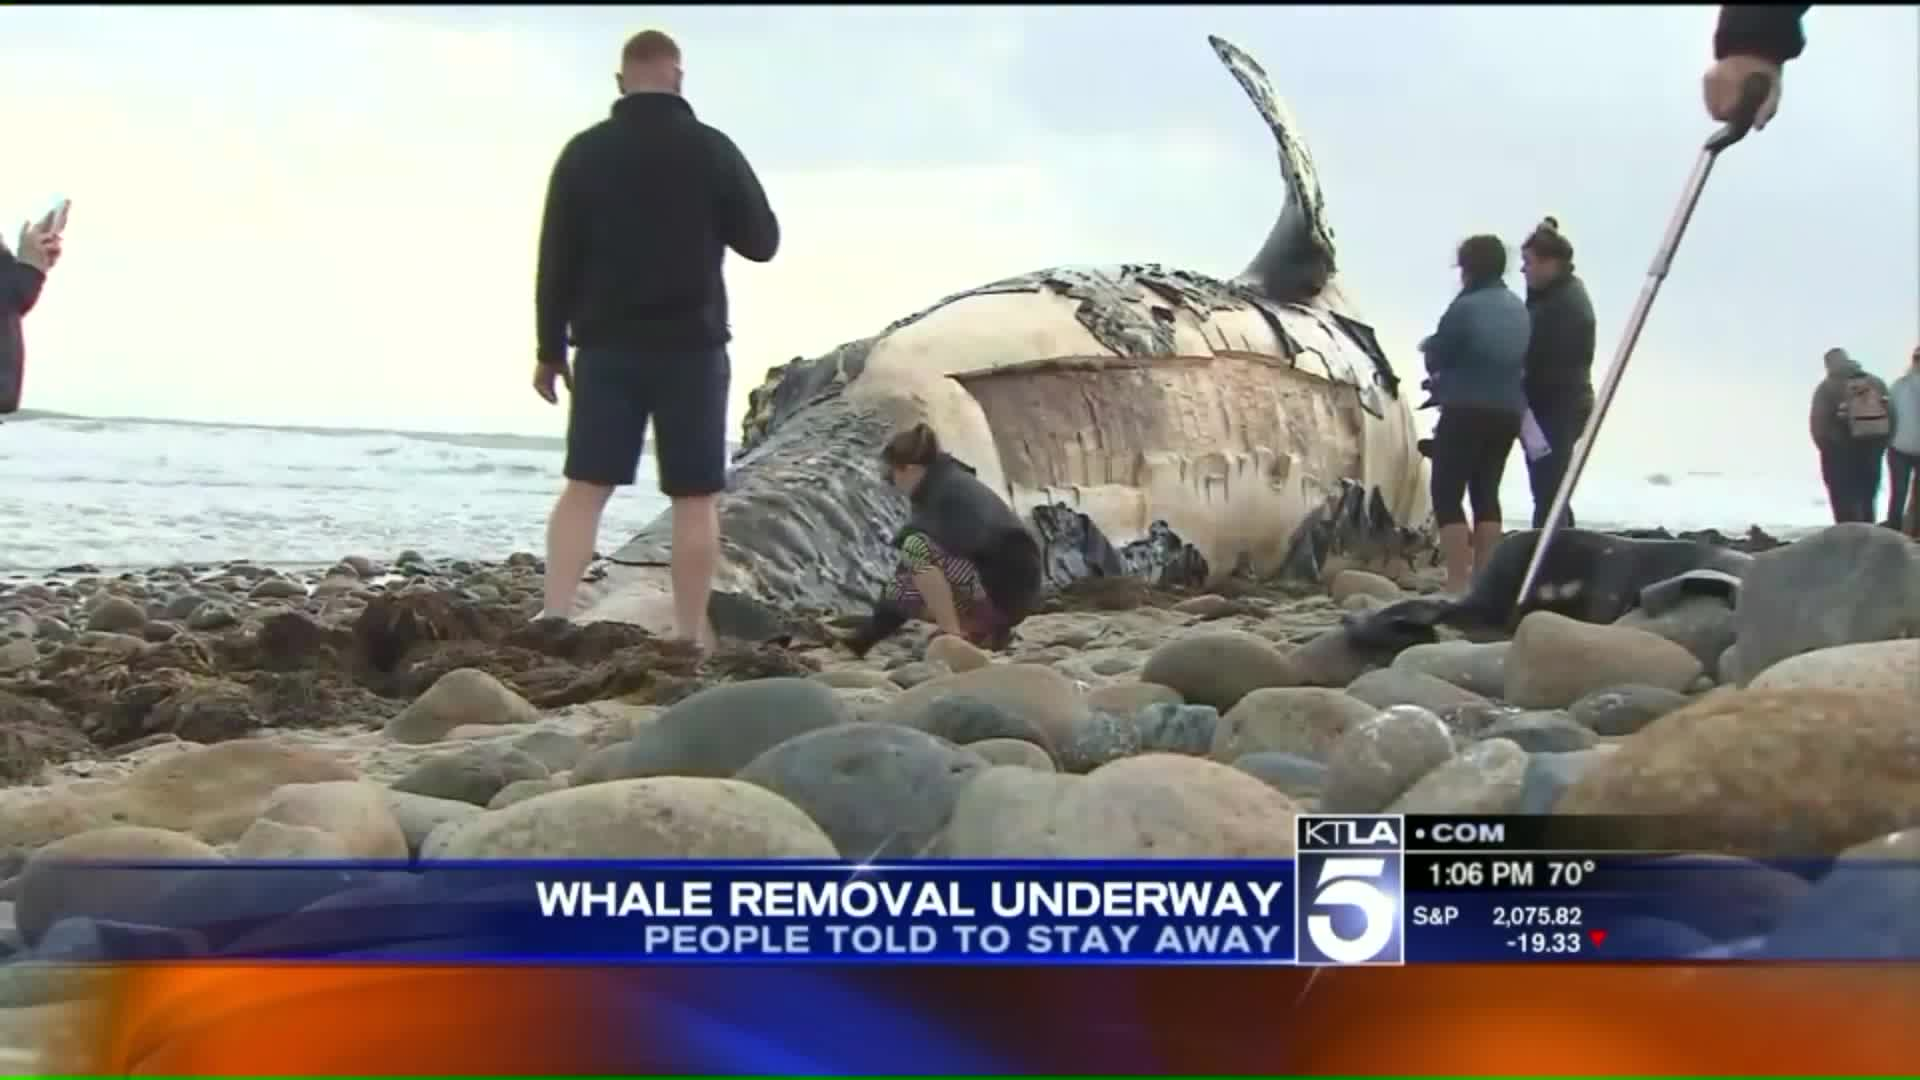 Workers Begin To Cut Up 40-Foot Whale Carcass For Removal From Beach